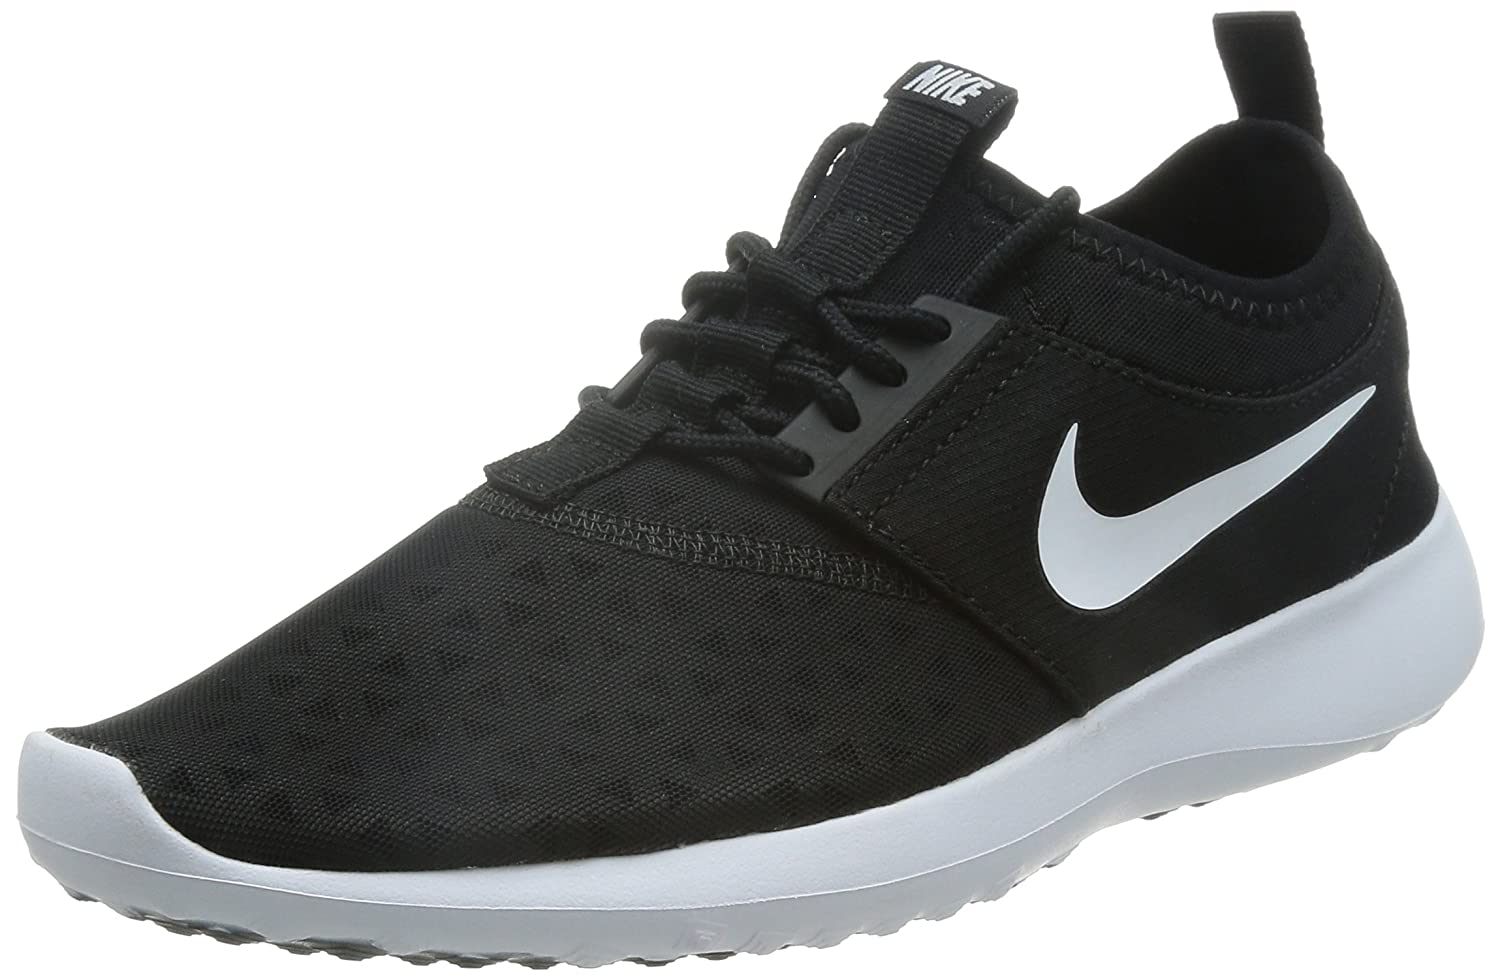 Juvenate Wmns ukShoesamp; Bags Nike Women's Fitness ShoesAmazon co K1luFc3T5J